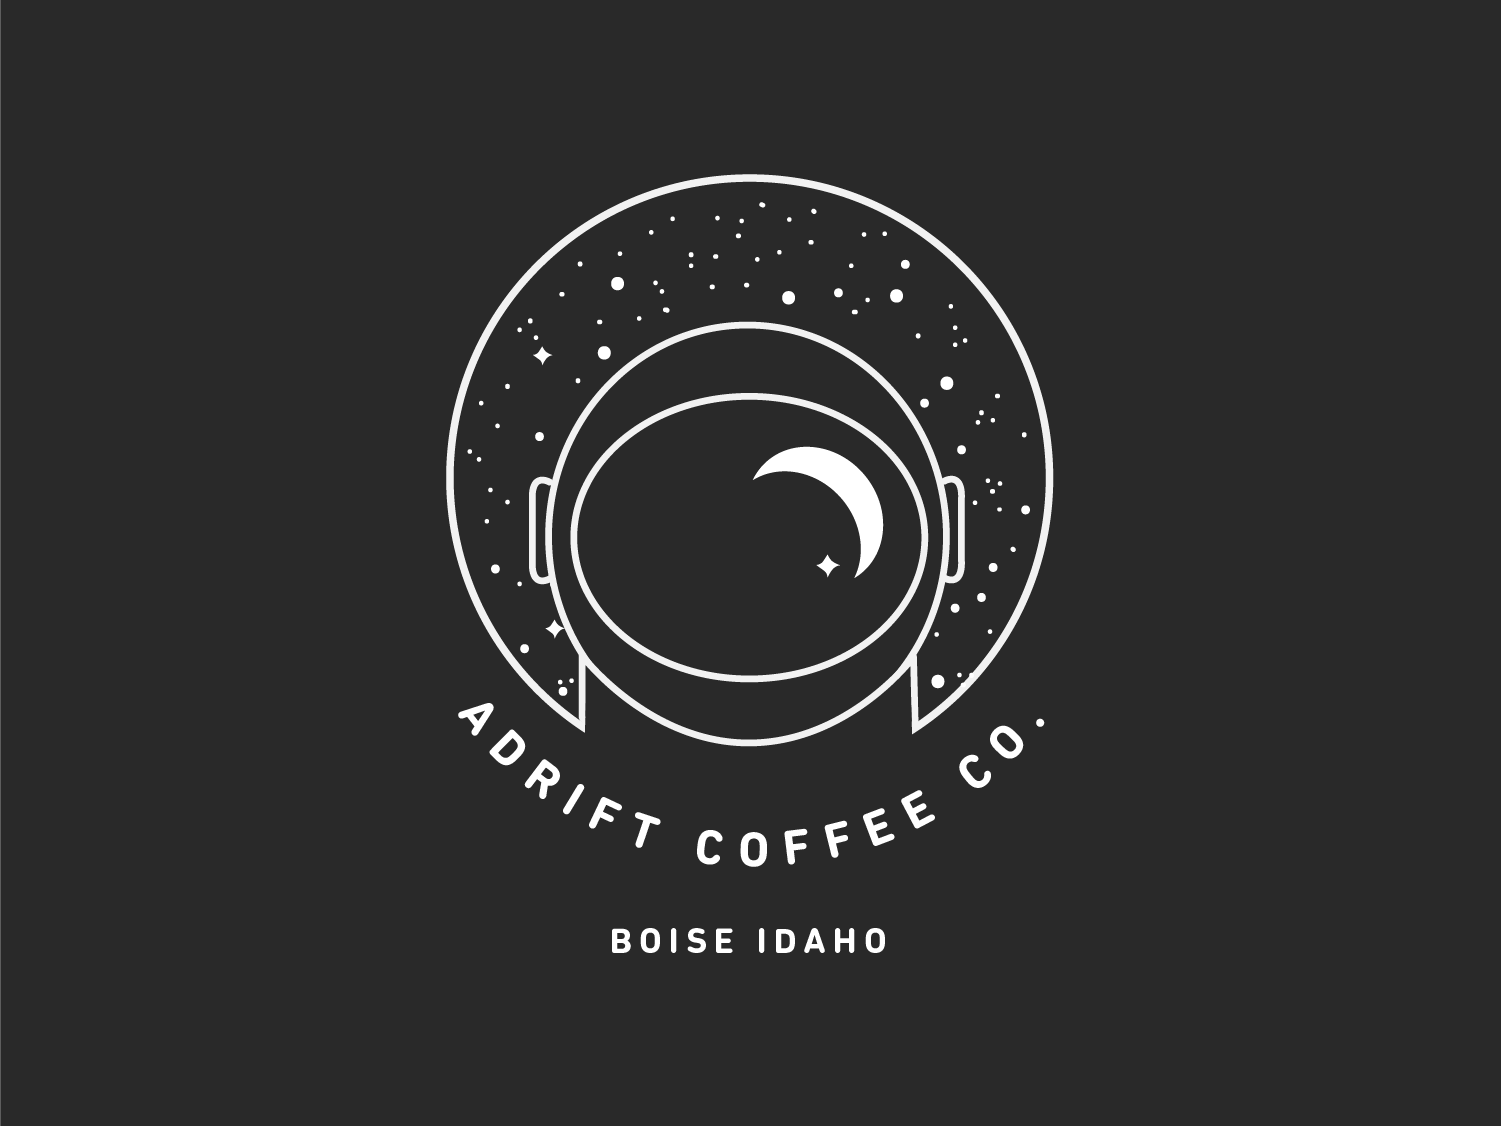 Adrift Coffee Company Pt. 1 moon space stars coffee coffee roaster astronaut icon flat illustration logo branding